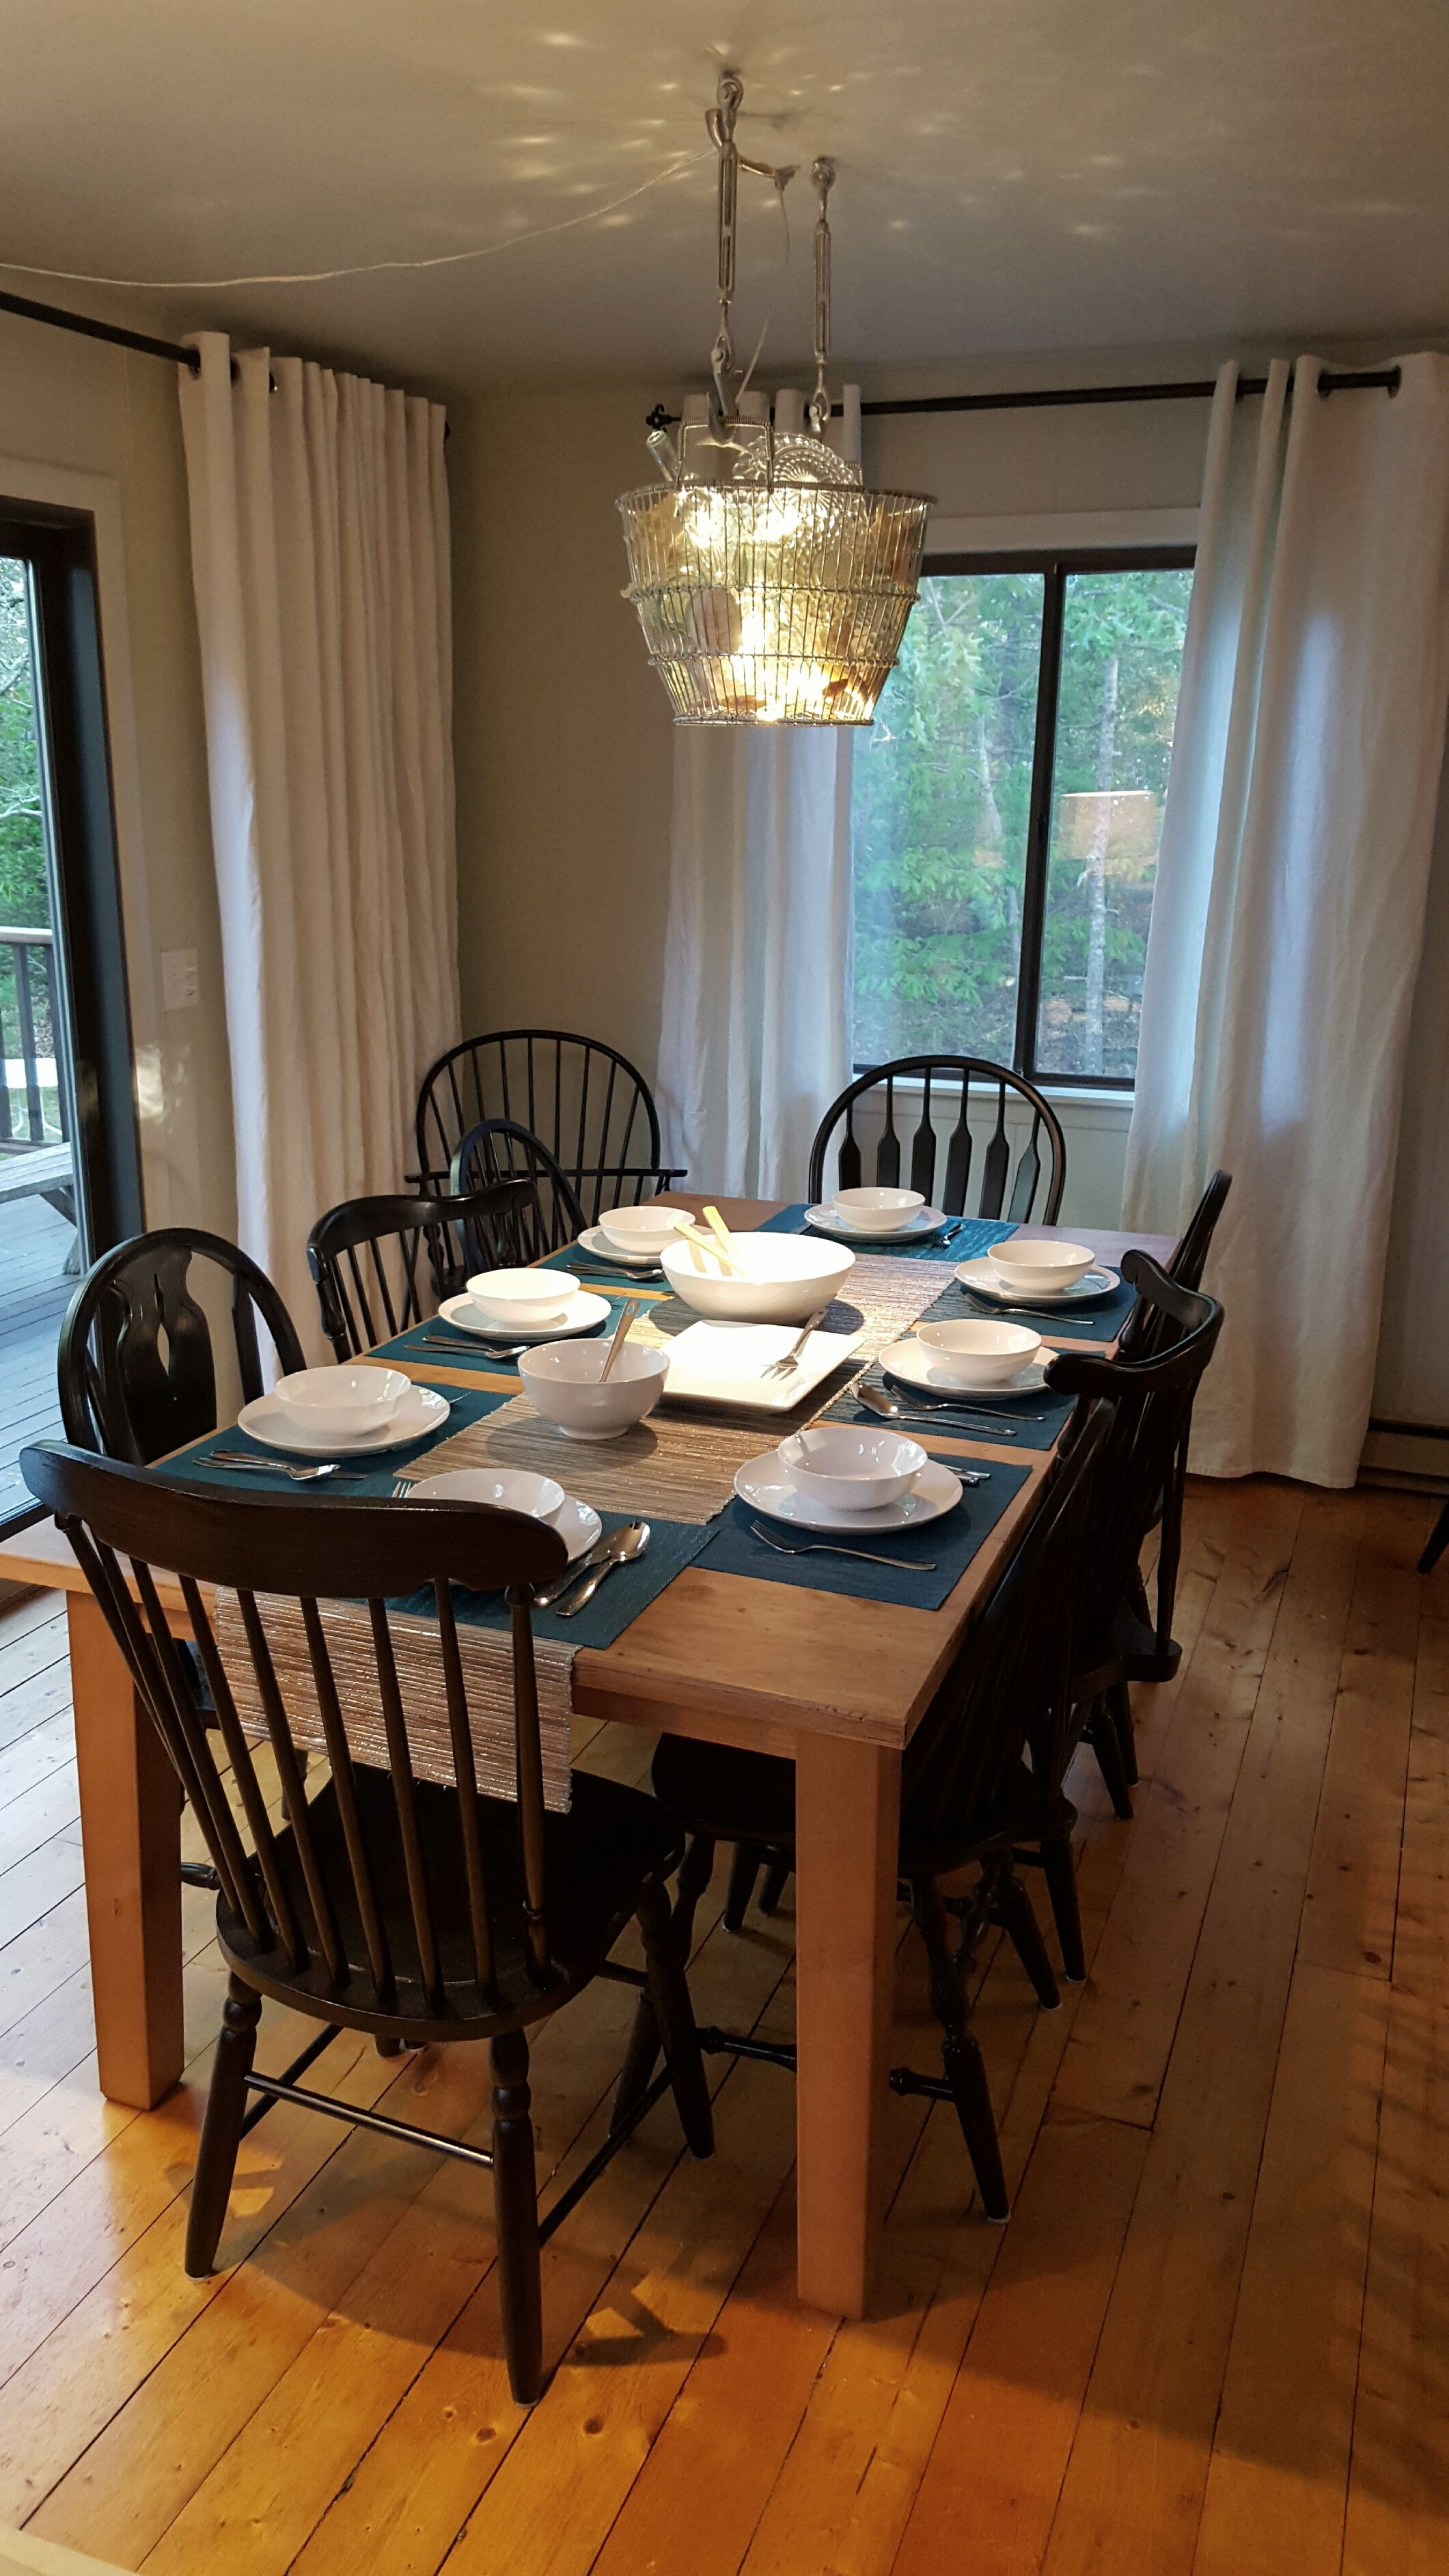 Mismatched Dining Chairs A Collection Of Mismatched Spindle Back Dining Chairs Is